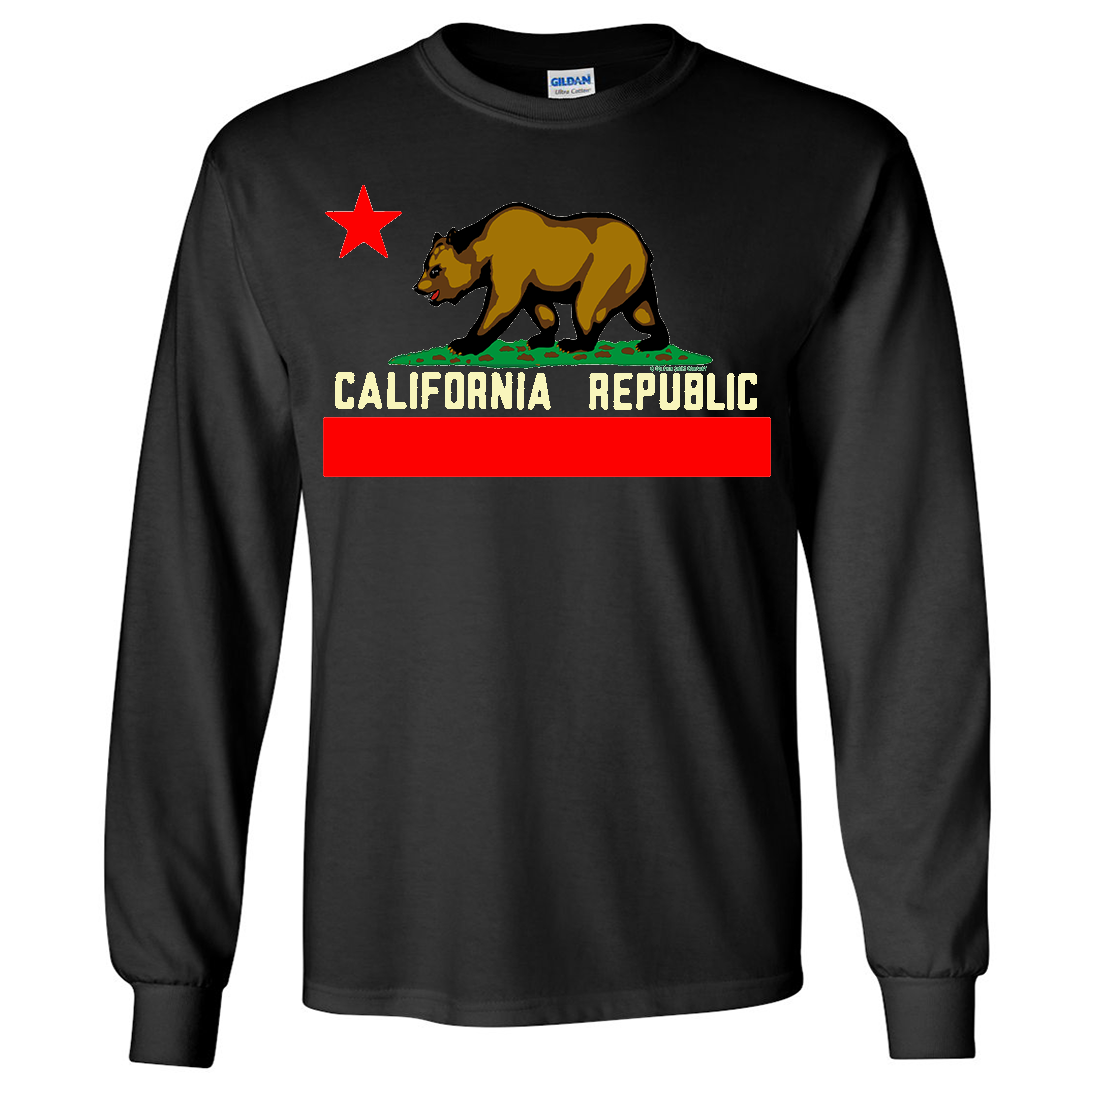 California State Flag Borderless Long Sleeve Shirt